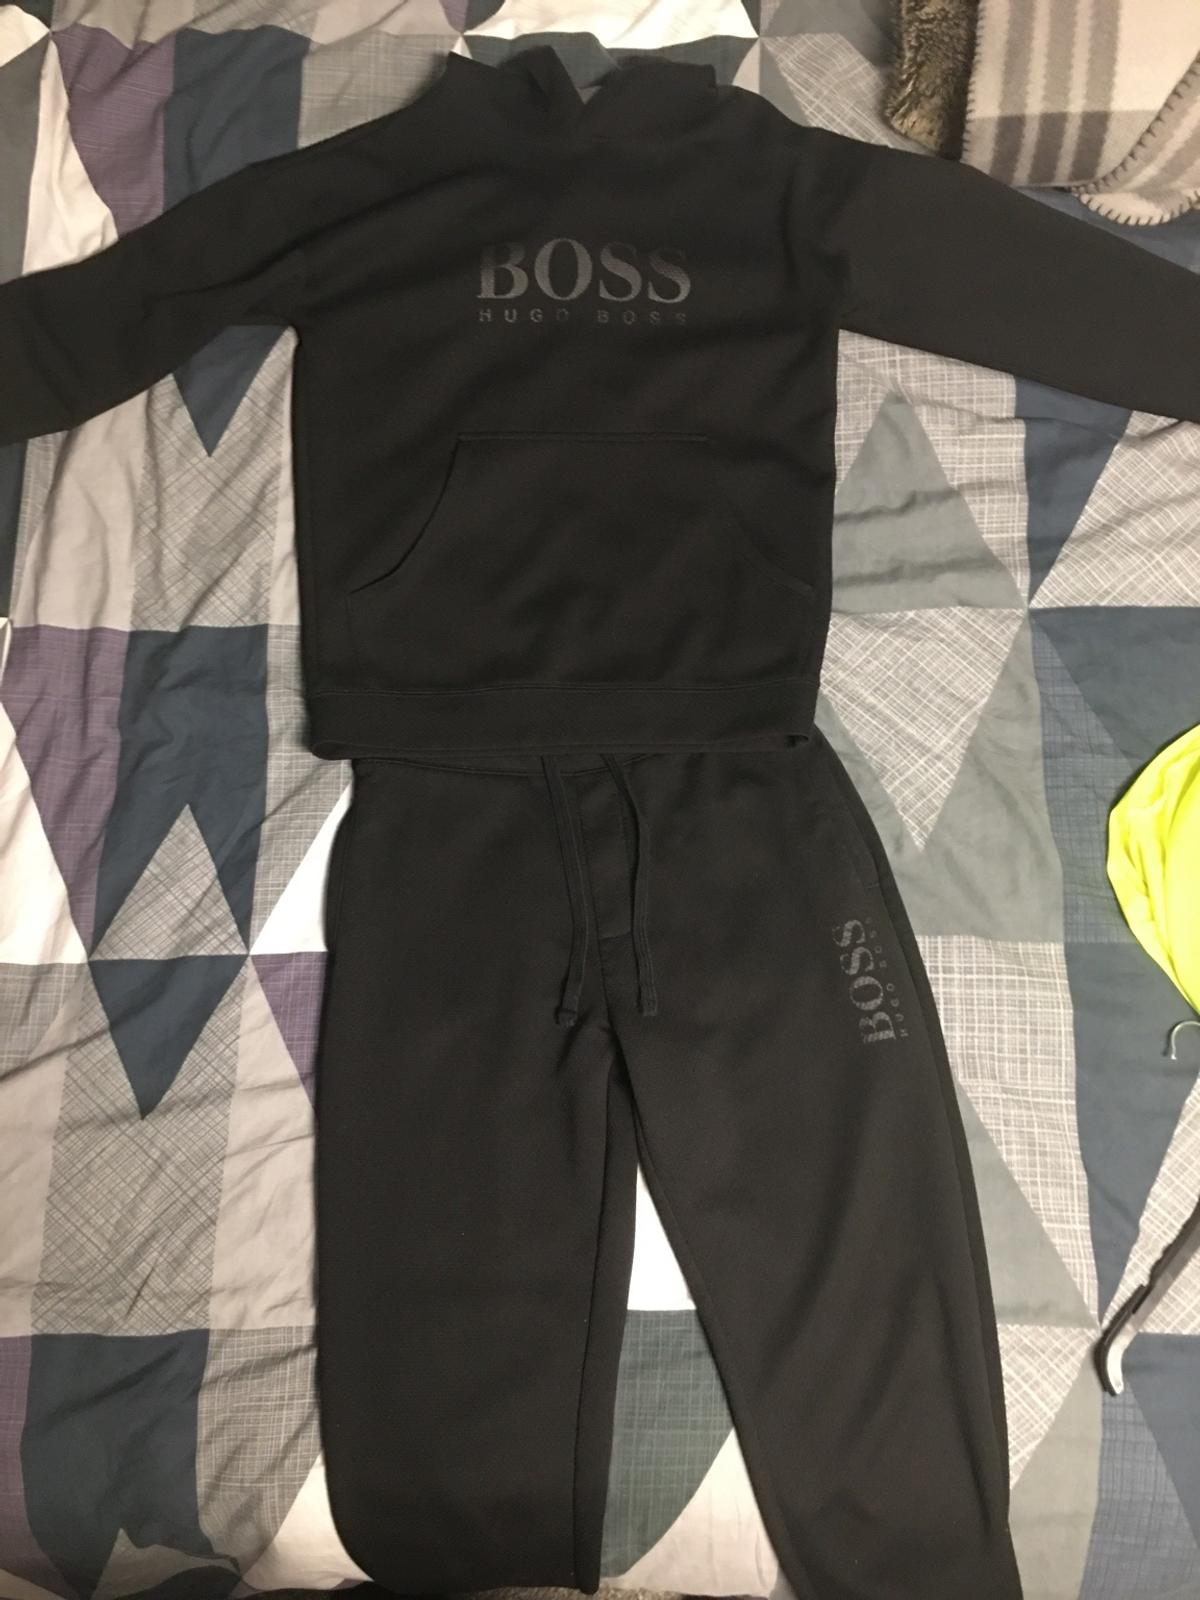 Small men's Hugo boss tracksuit hardly worn good condition